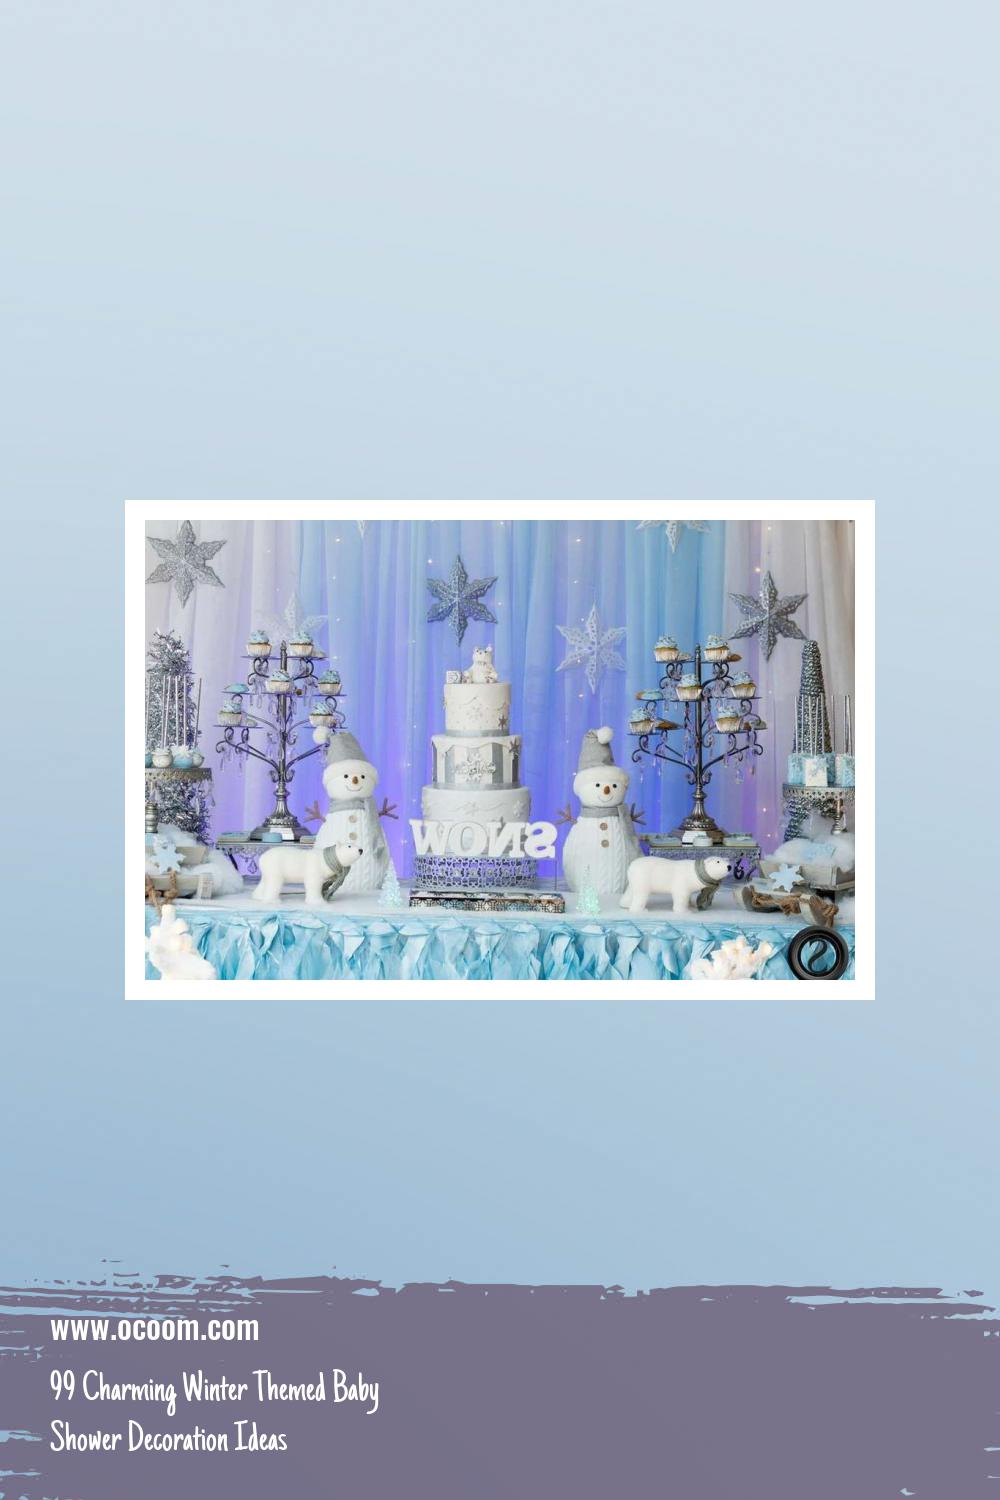 99 Charming Winter Themed Baby Shower Decoration Ideas 37